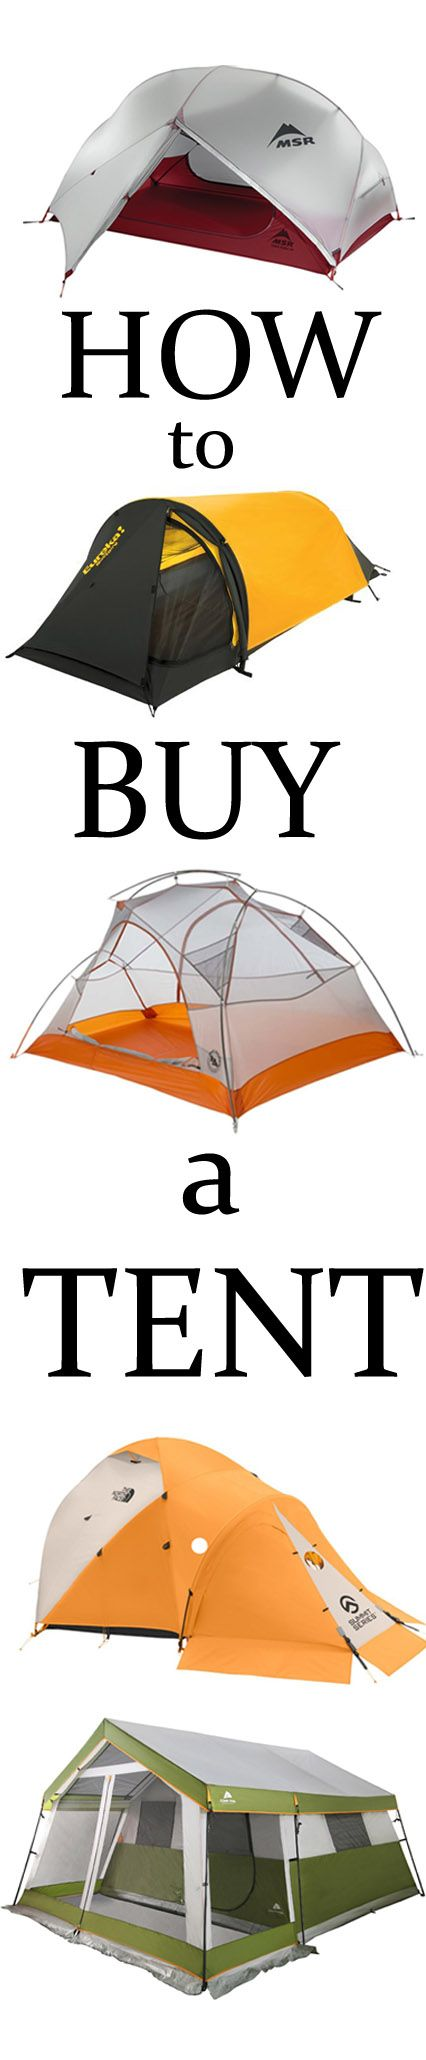 This 15 minute guide will tell you everything you need to know about how to buy a tent for camping or backpacking, whether you lightweight backpack solo or go car camping with the family.